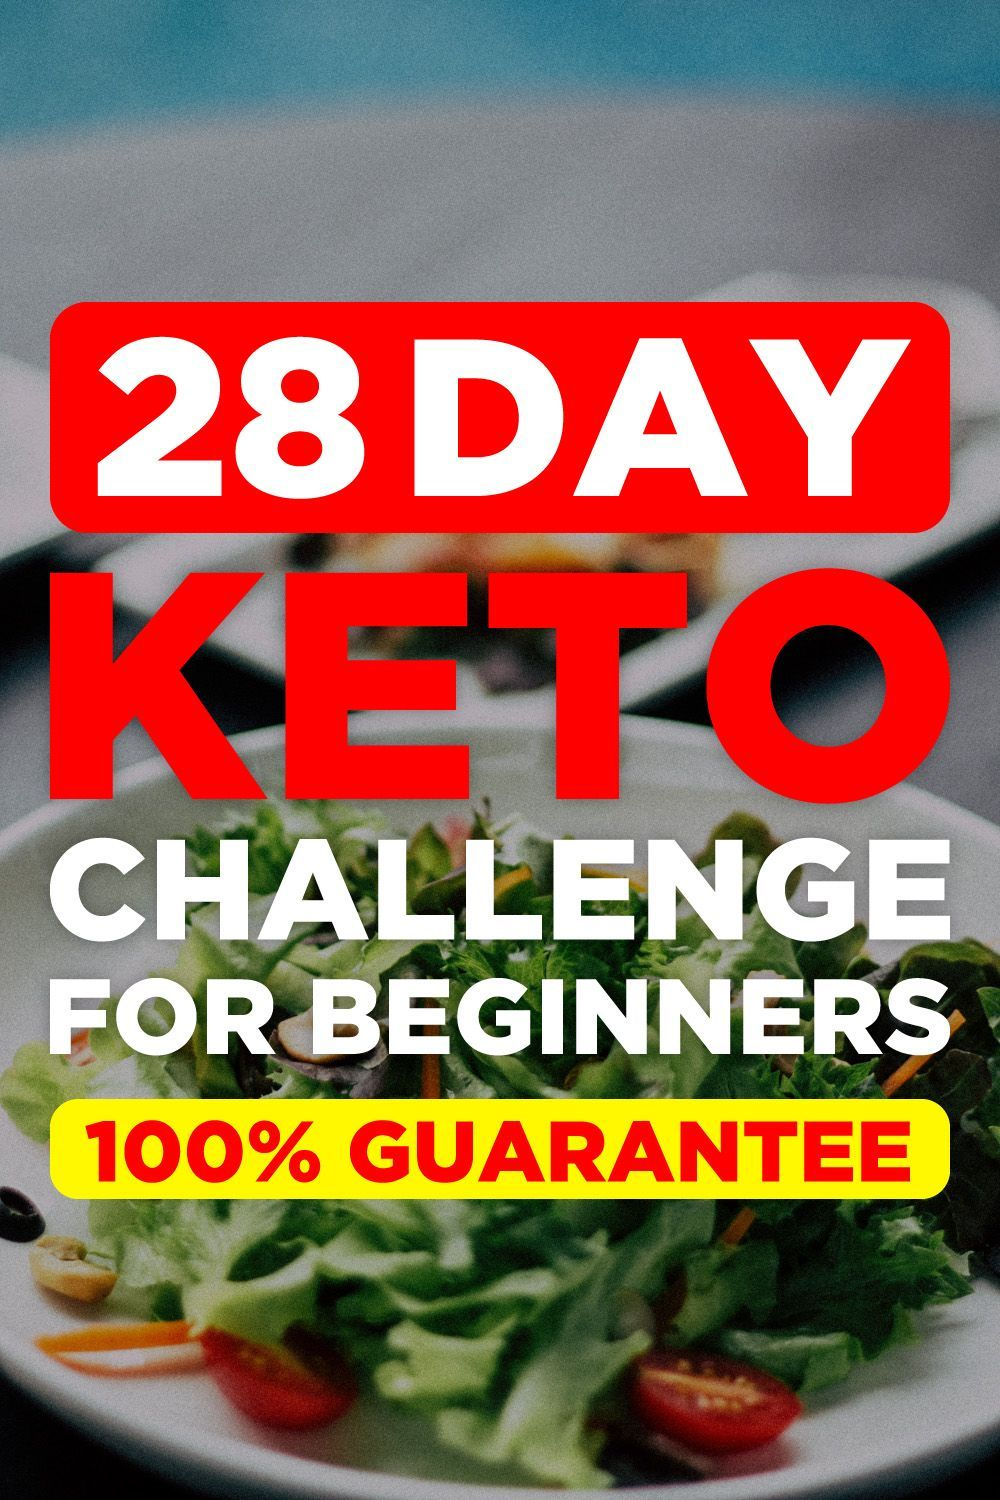 lose 80 pounds in 6 months, protien diet, weight loss nutrition plan, skinny low carb food recipes, yummy diet recipes, ketogenic eating, low carb diet plan, healthy snacks to lose weight, not losing weight reasons, 5 2 diet recipes, low carb diet snacks, keto diet beginners, how to get abs fast, nutribullet for weight loss, adkins recipes atkins diet, low carb diet side effects, cyclic ketogenic diet, losing weight with pcos, atkins diet recipes phase, keto diet hair loss, k